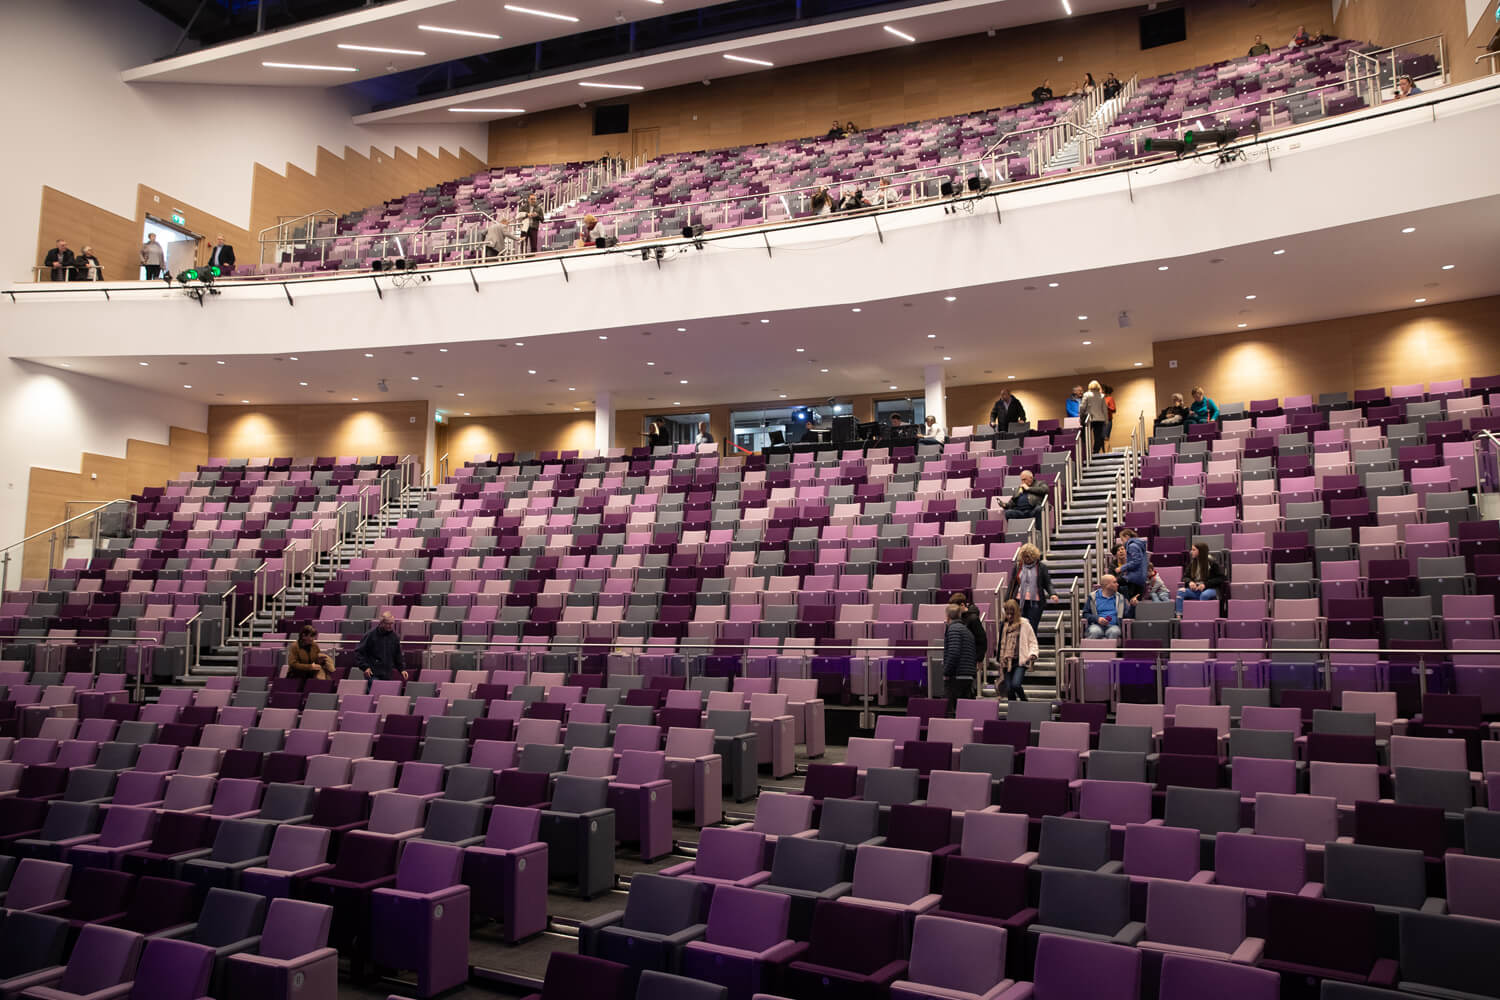 conferance seating icc wales